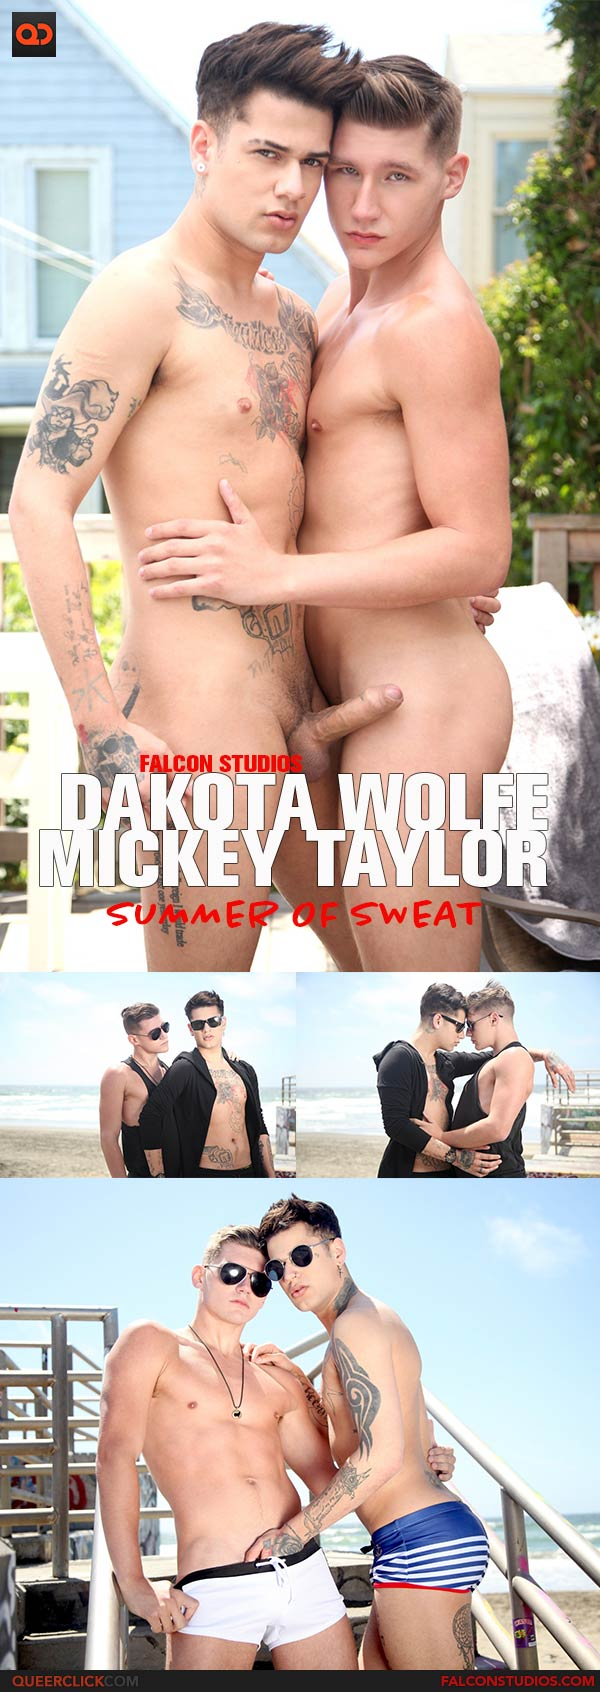 FalconStudios: Dakota Wolfe and Mickey Taylor